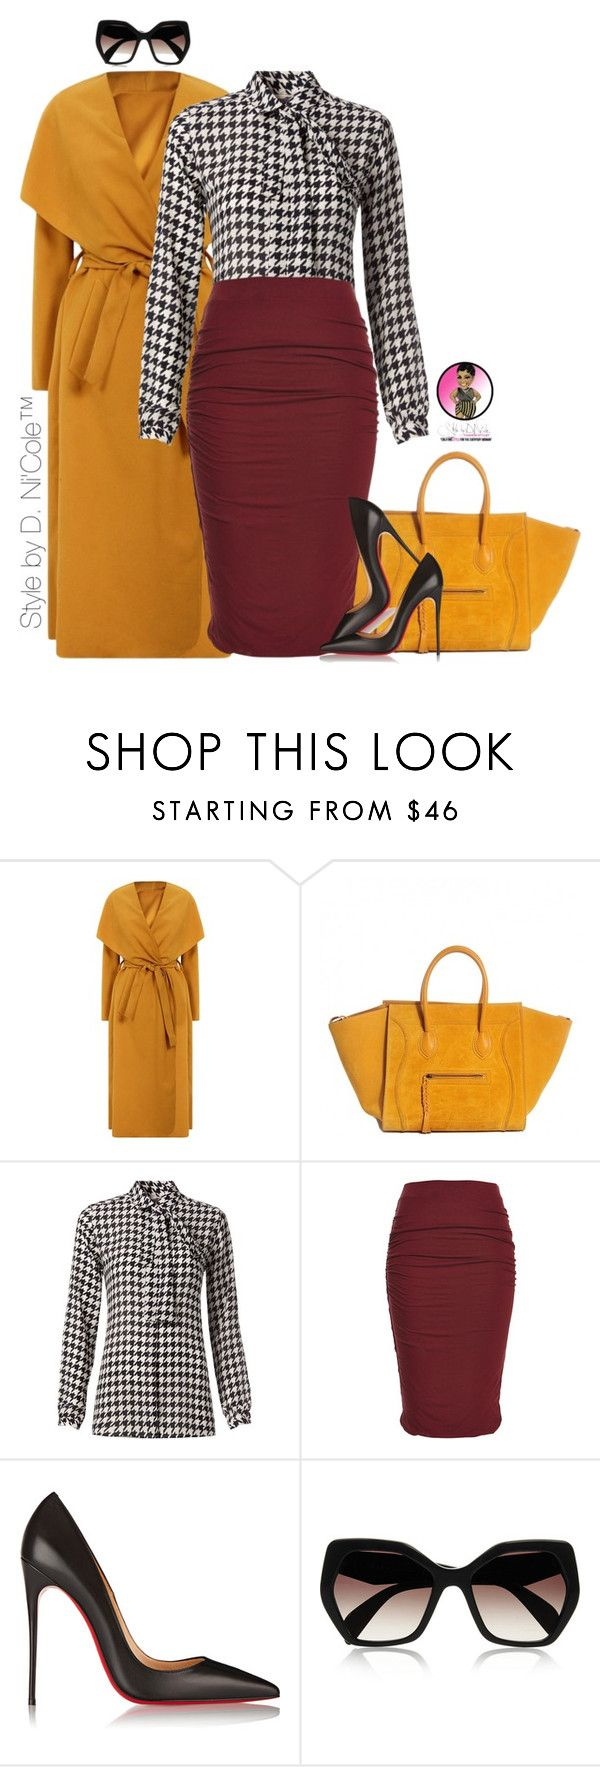 """""""Untitled #2852"""" by stylebydnicole ❤ liked on Polyvore featuring Tommy Hilfiger, Christian Louboutin and Prada"""